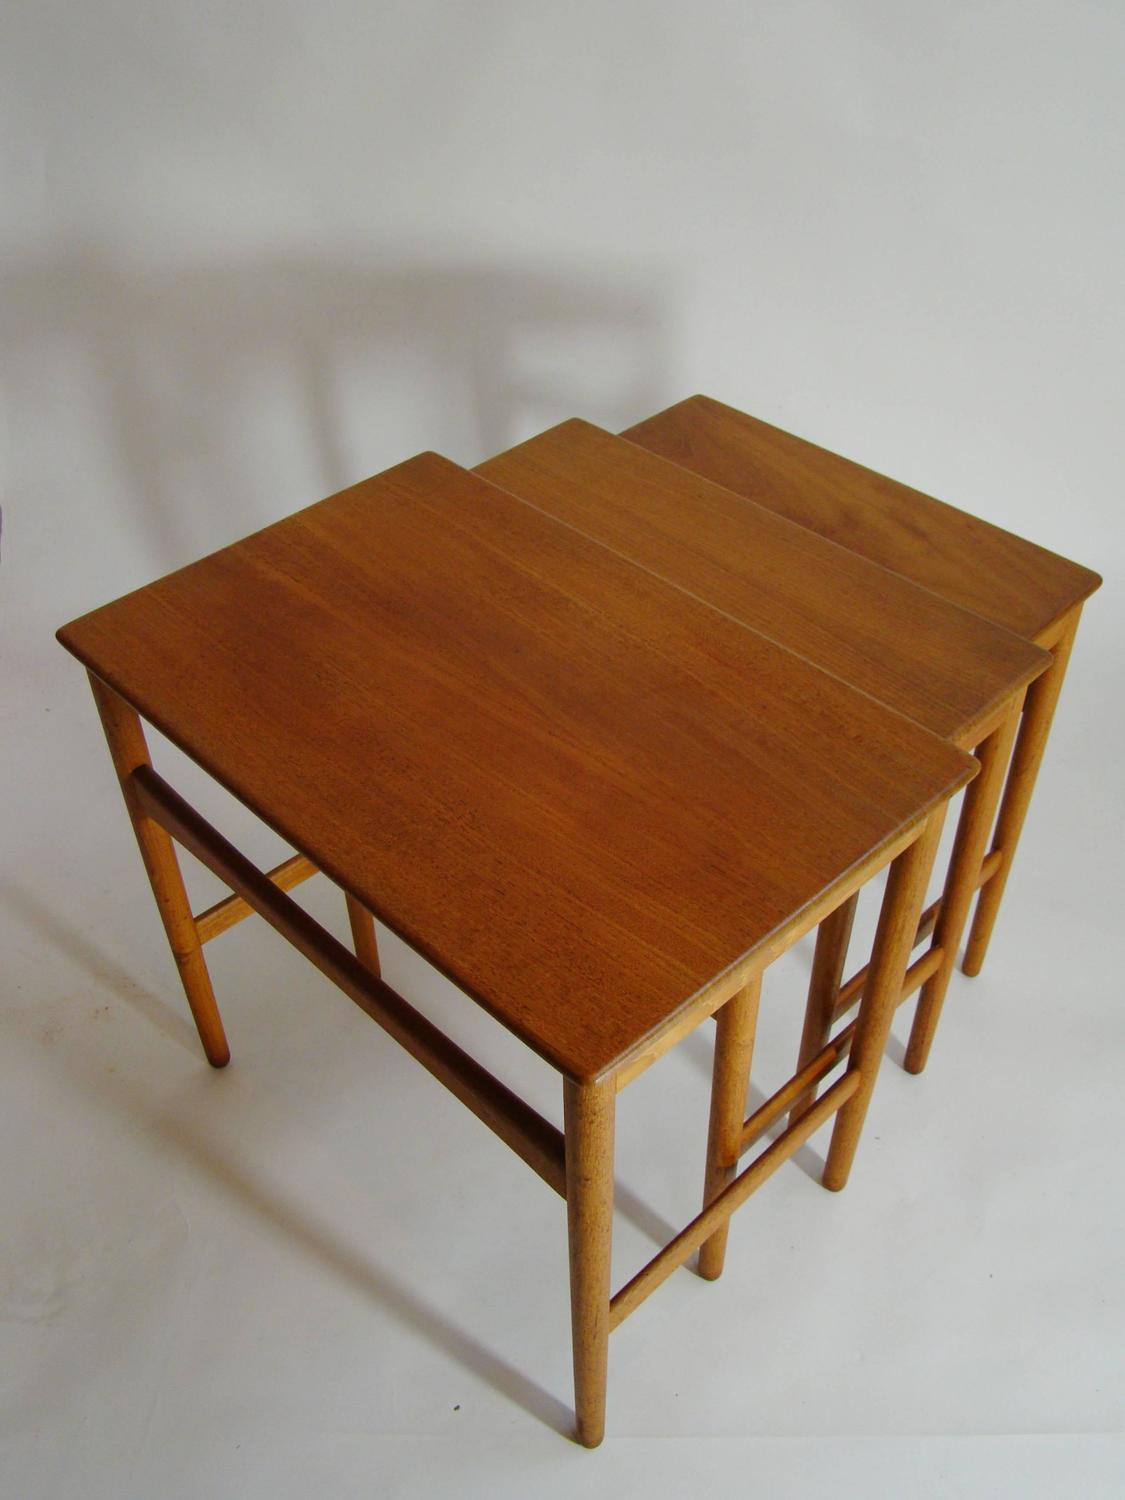 Hans wegner for andreas tuck teak nesting tables at 1stdibs Andreas furniture